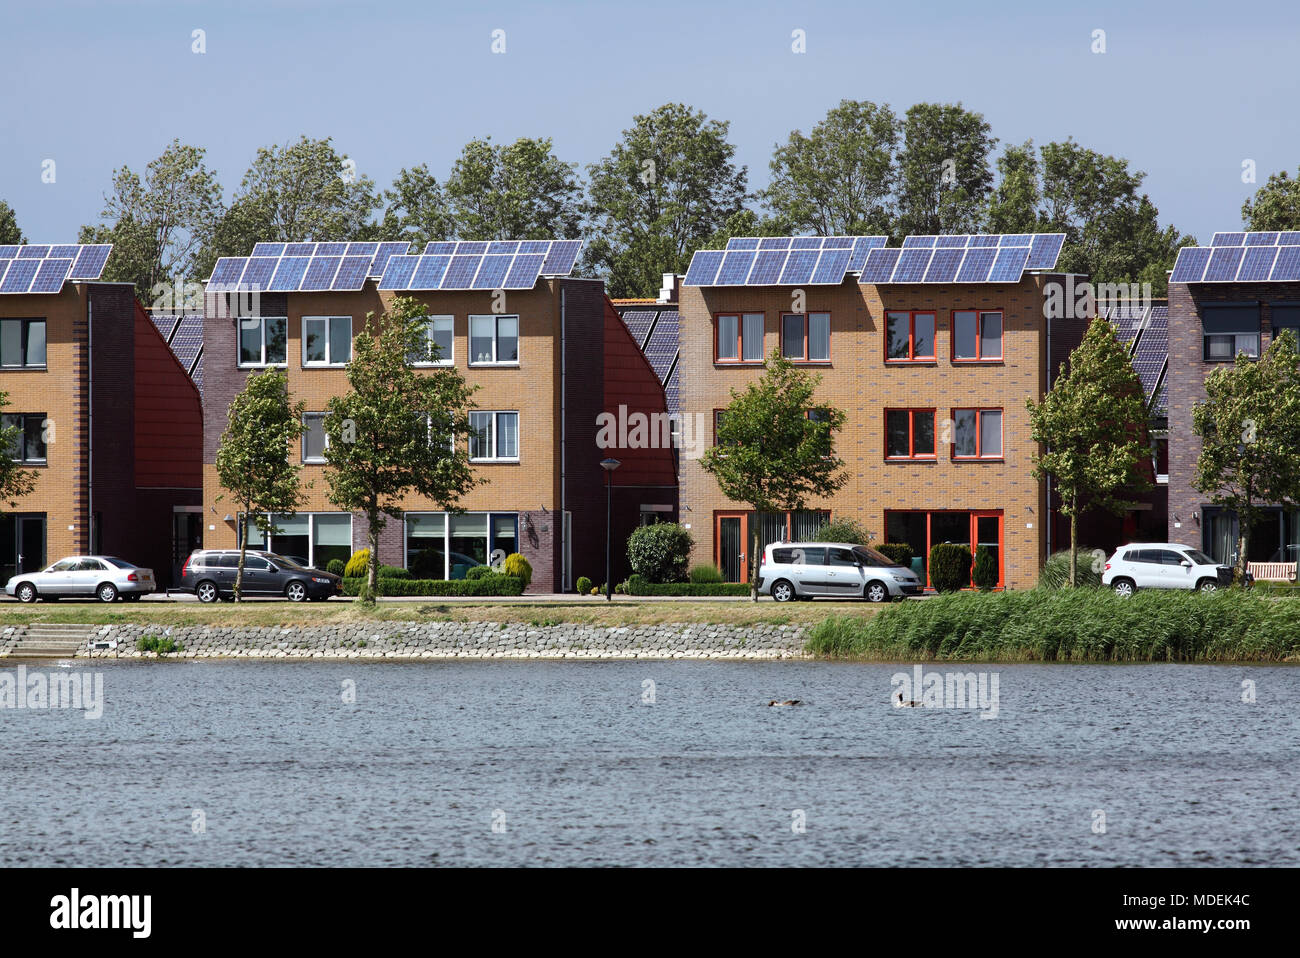 Houses topped with photovoltaic cells in Stad van de Zon (City of the Sun), a sustainable suburb of Heerhugowaard, North Holland, The Netherlands. - Stock Image